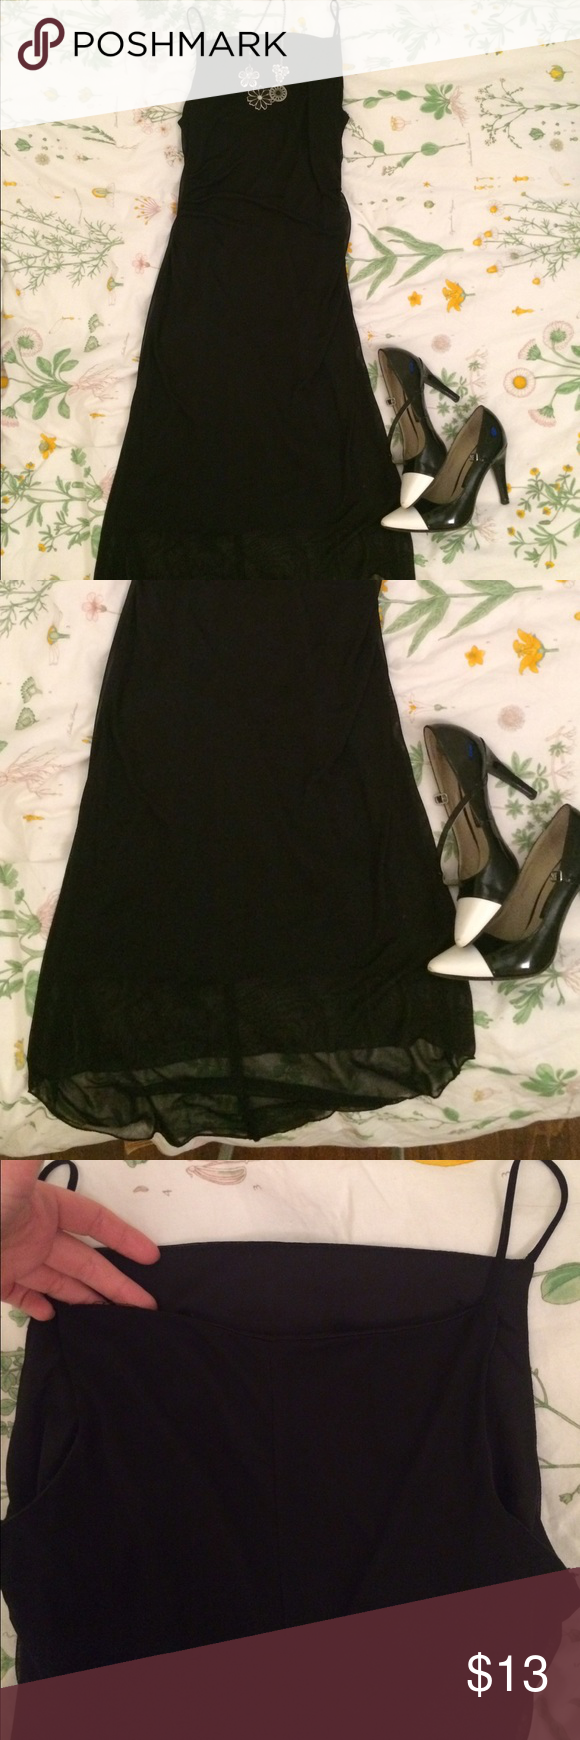 Sexy Black Dress That perfect little black dress. Romantic sheer dress with lining. It comes up to right about the collar bone in the front and the back is just slightly lower. High low train. (Accessories not for sale) Comes from smoke free/pet free home :) Dresses